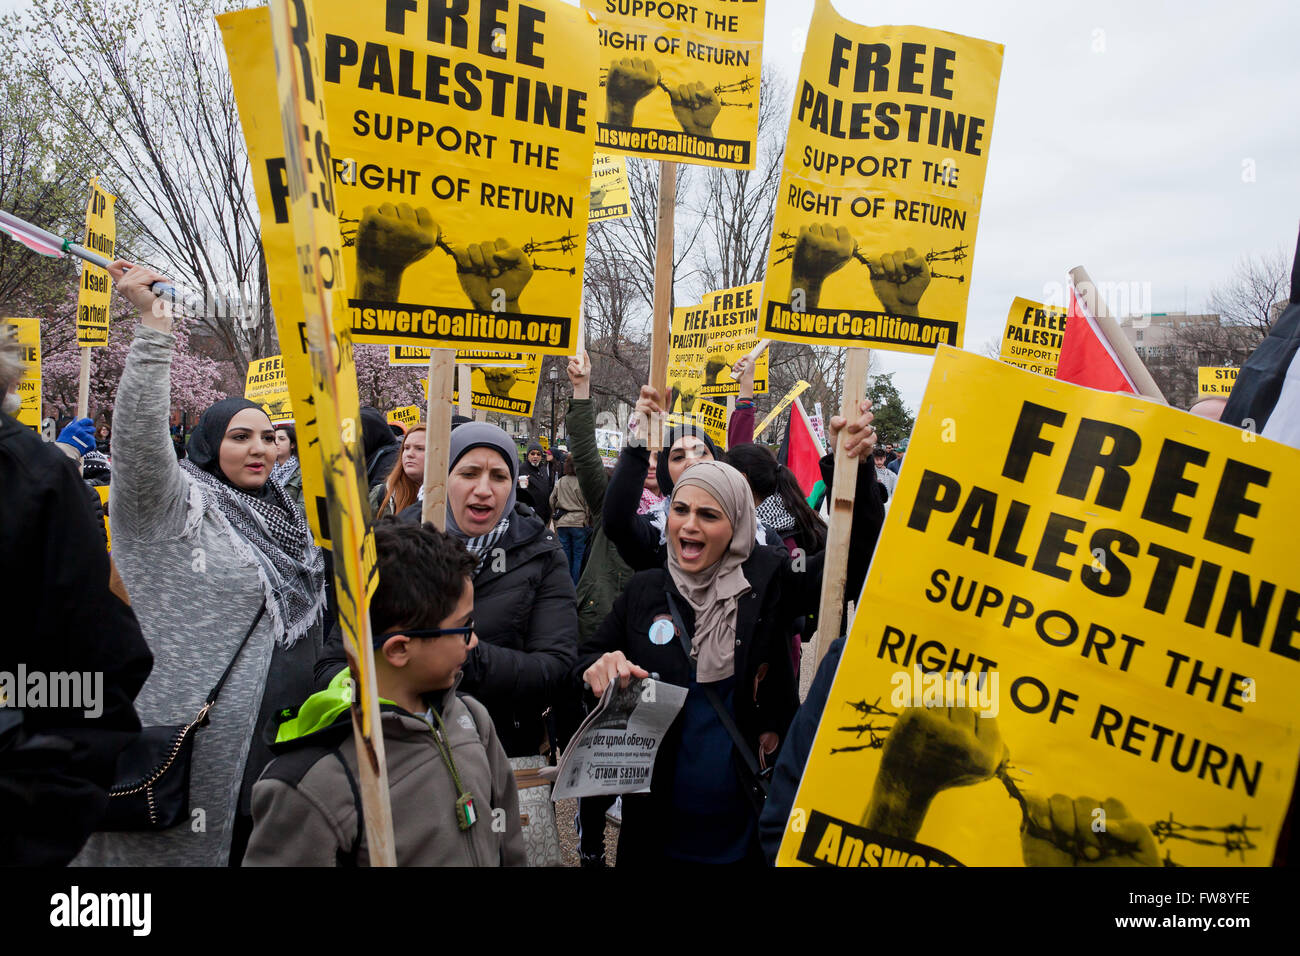 Sunday, March 20, 2016, Washington, DC USA: Anti-Israel protesters rally  in front of the White House against AIPAC - Stock Image